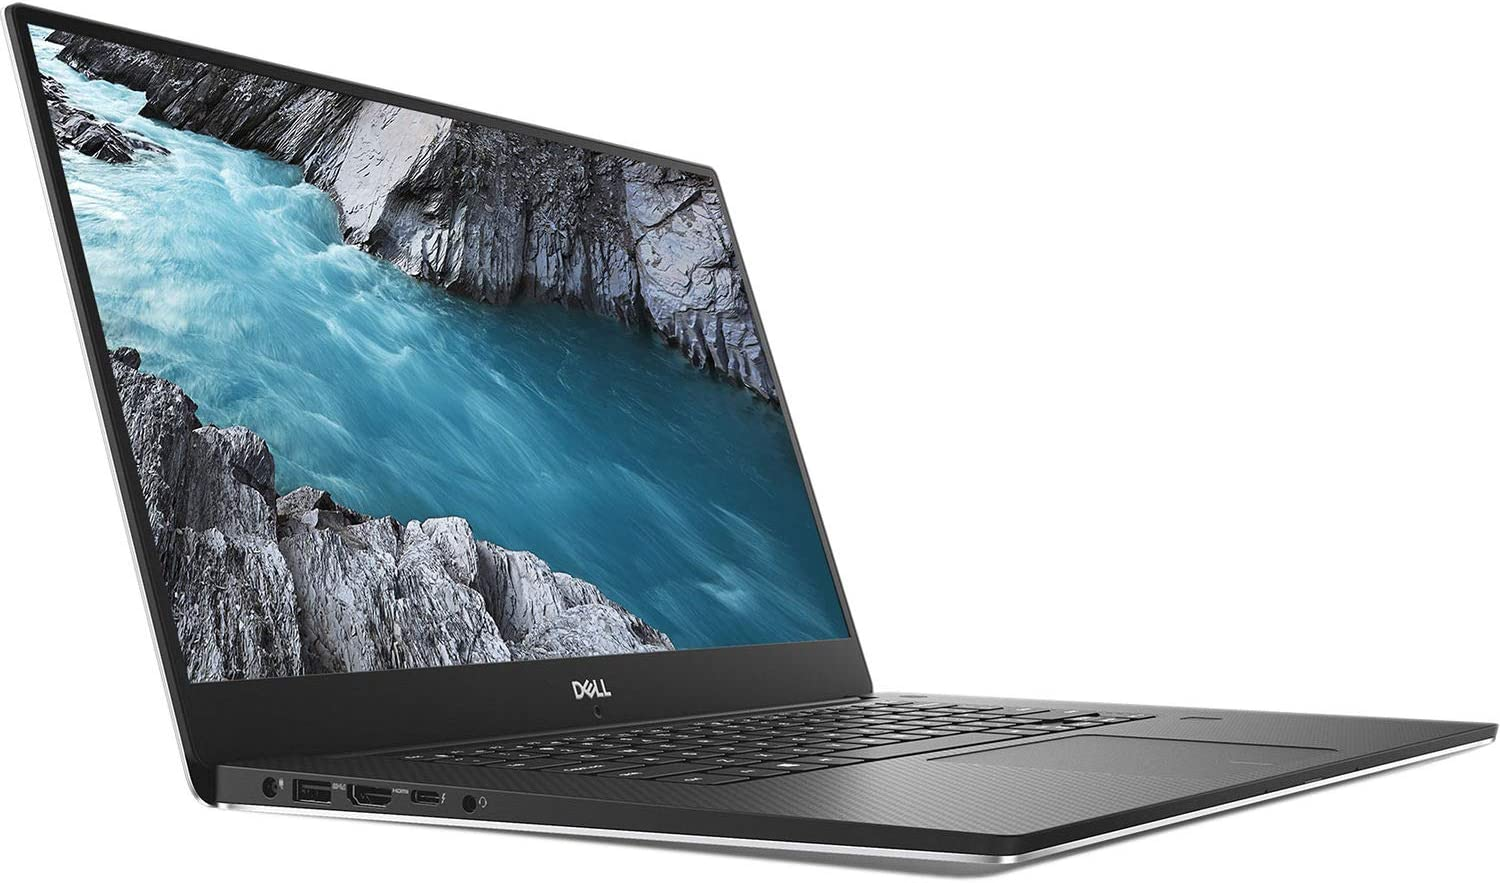 "Dell XPS 15 9570 15.6"" Touchscreen InfinityEdge 4K Ultra HD Laptop - 8th Gen Intel Core i7-8750H Processor up to 4.10 GHz, 32GB Memory, 1TB SSD, 4GB NVIDIA GeForce GTX 1050 Ti, Windows 10 Pro, Silver"